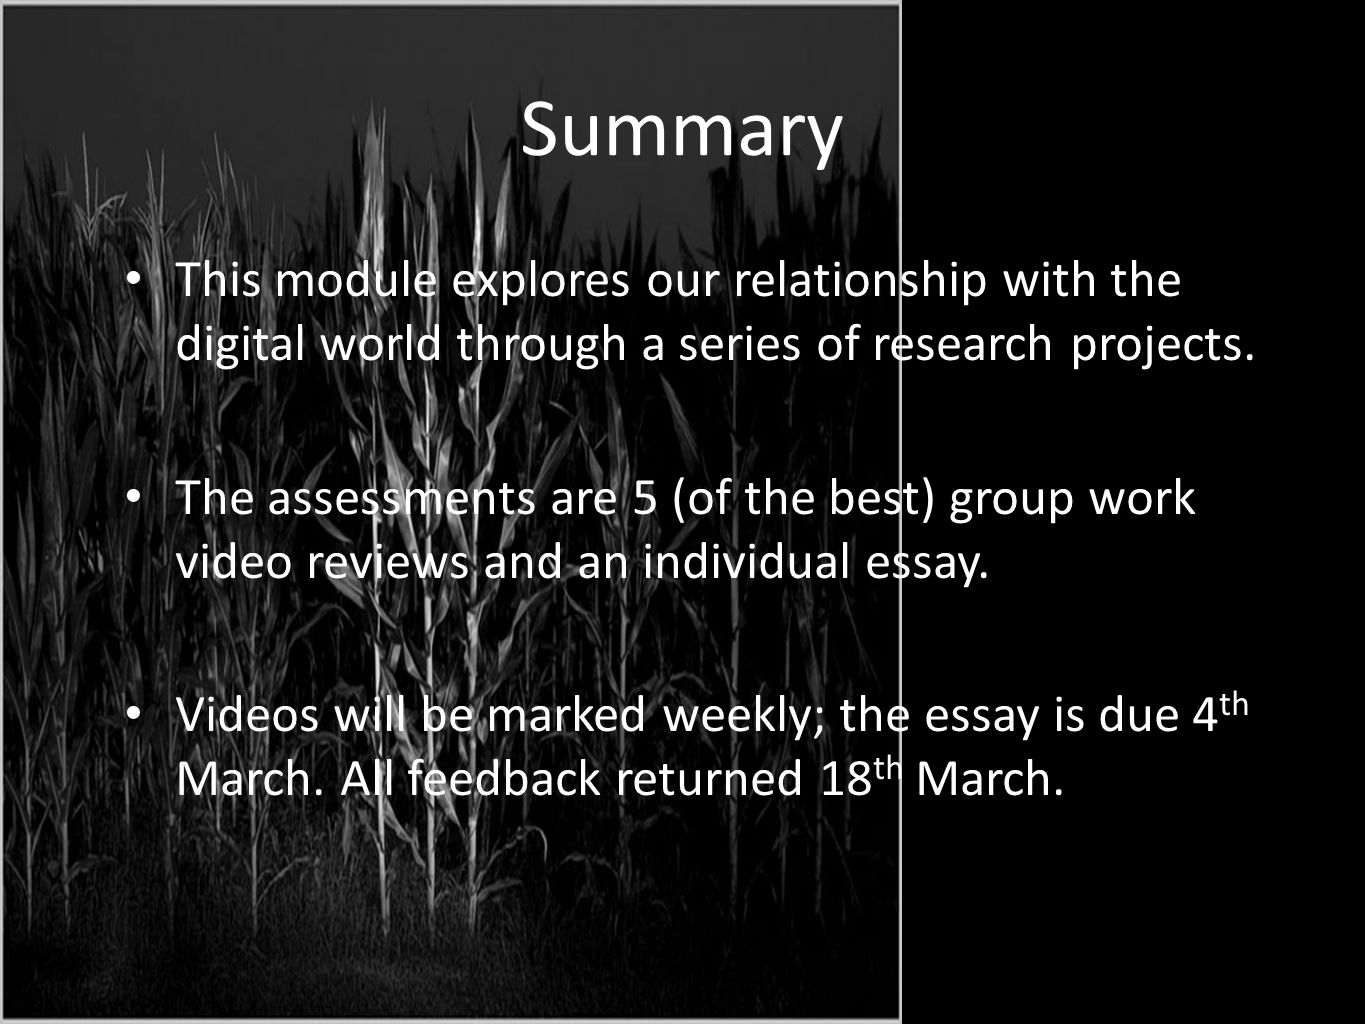 Summary This module explores our relationship with the digital world through a series of research projects.